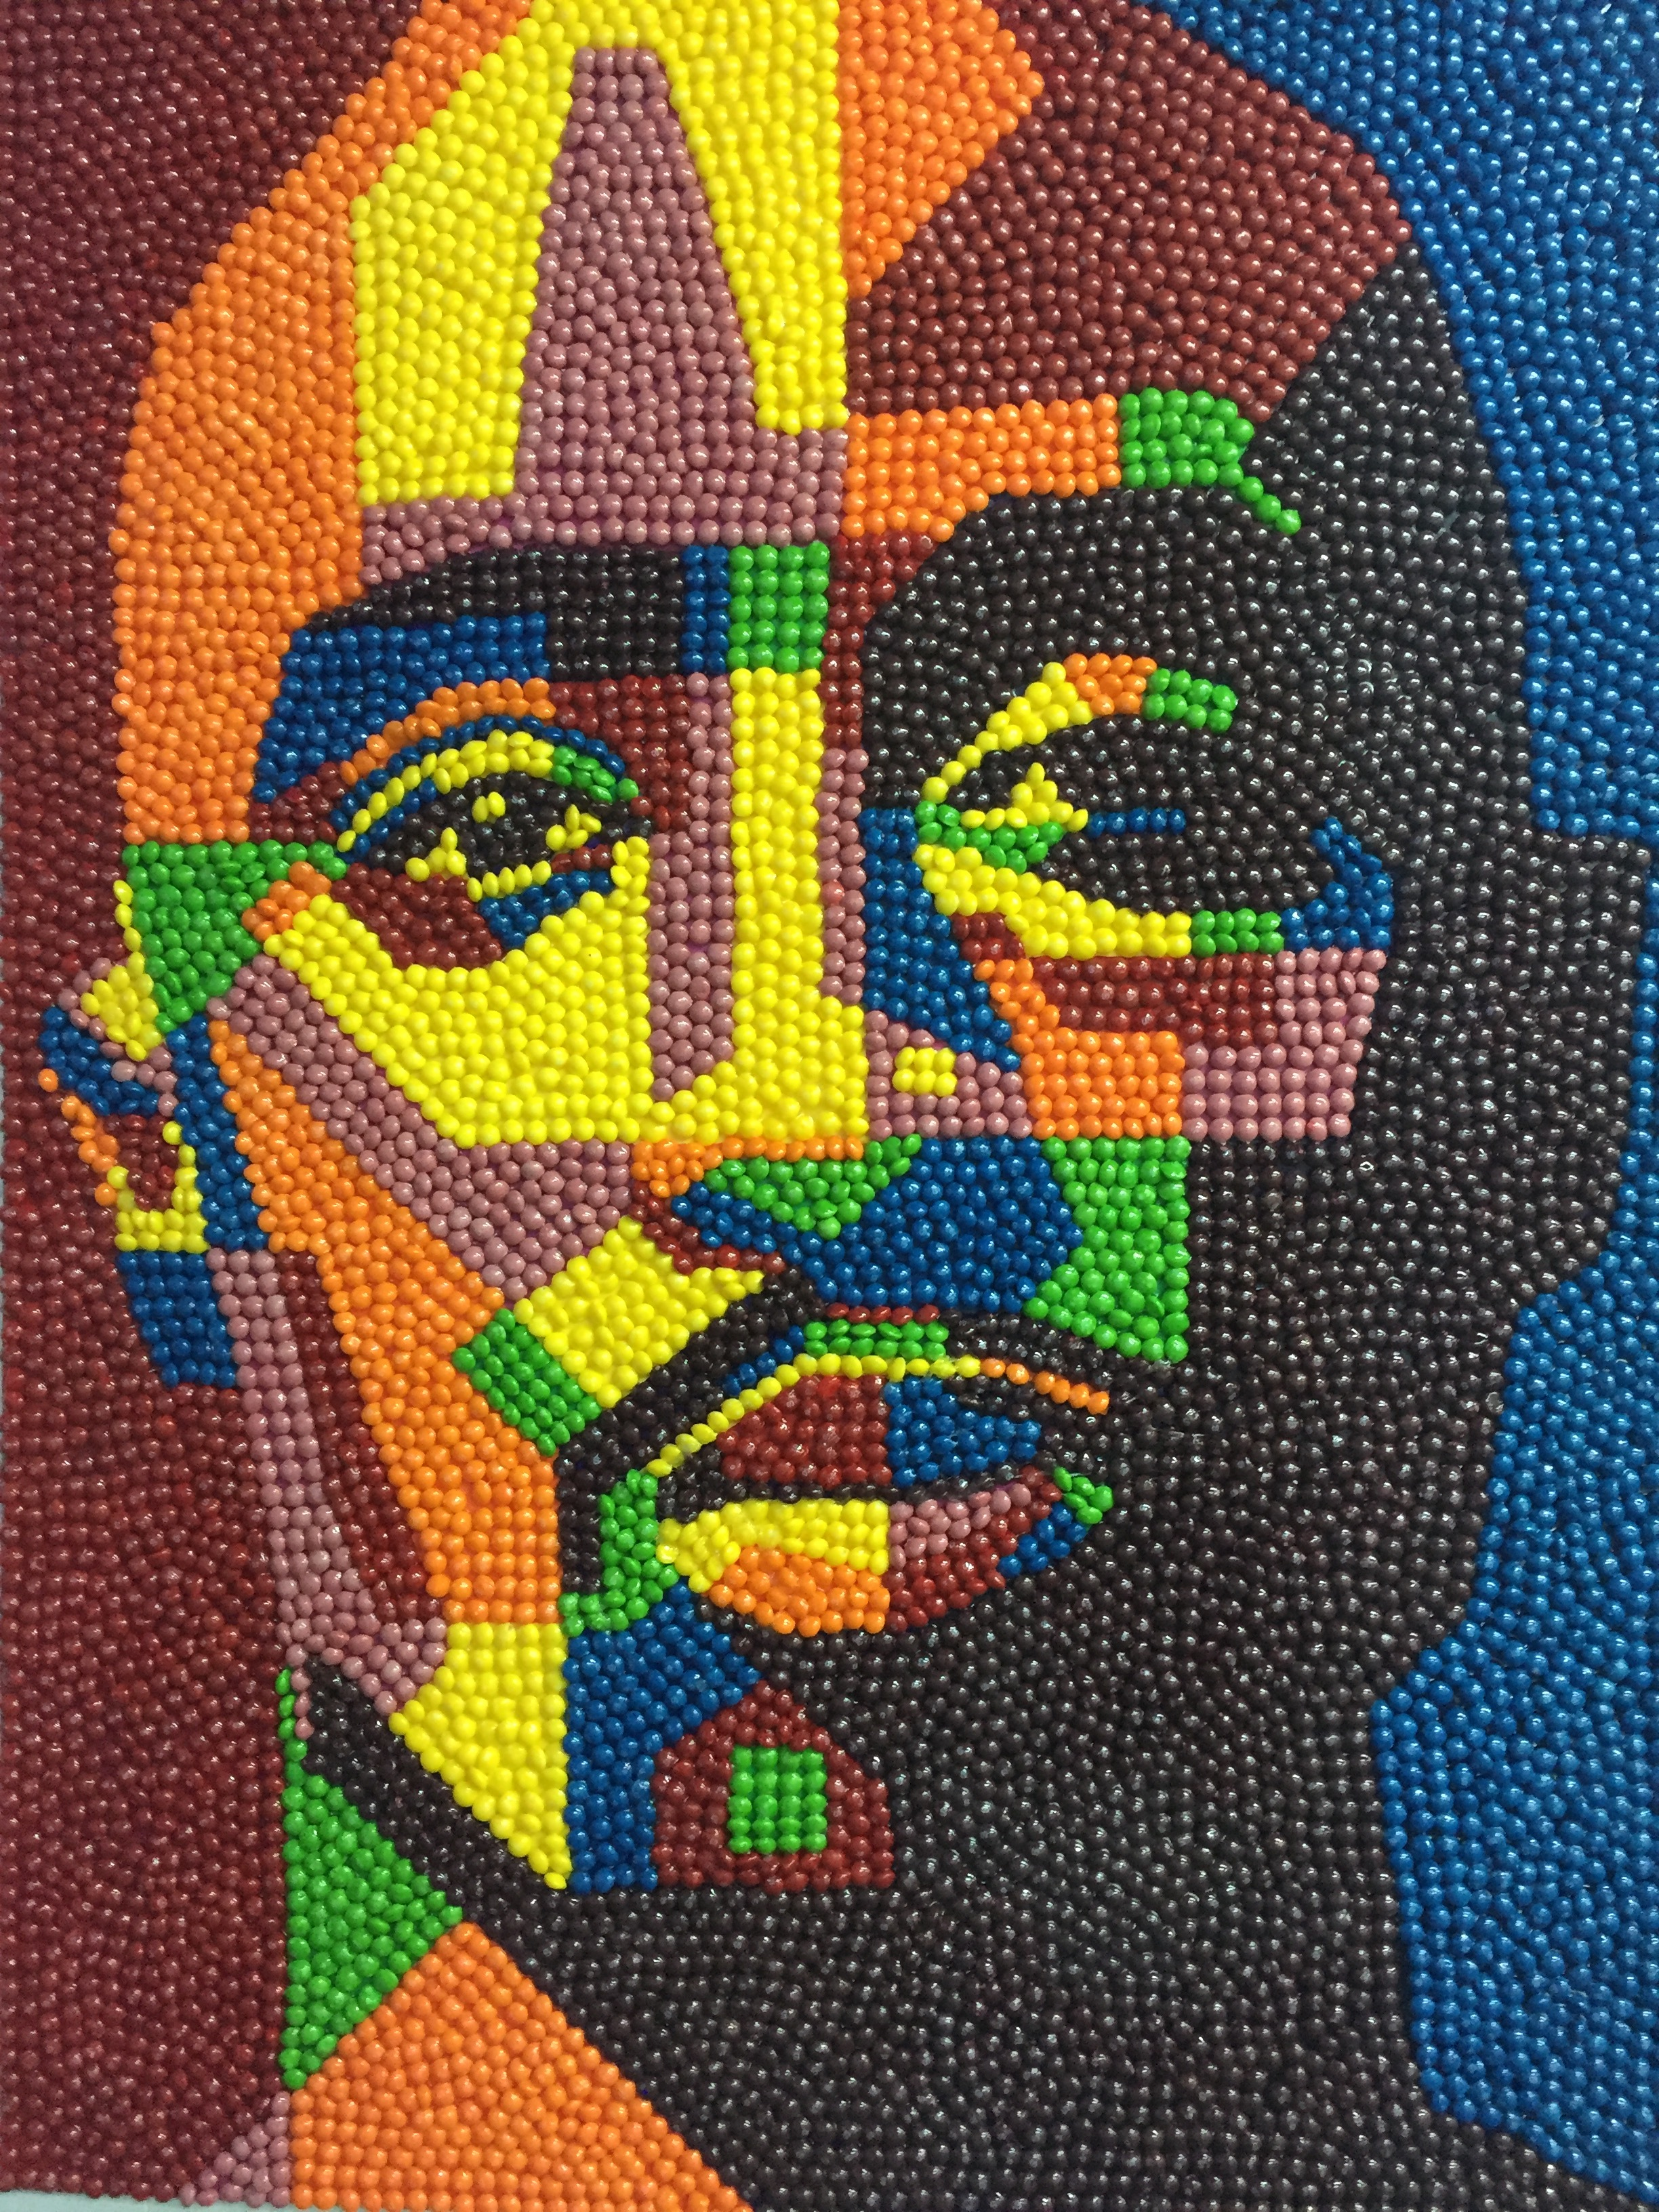 Skittle art by Harold Claudio, @meetzoeblack on Instagram